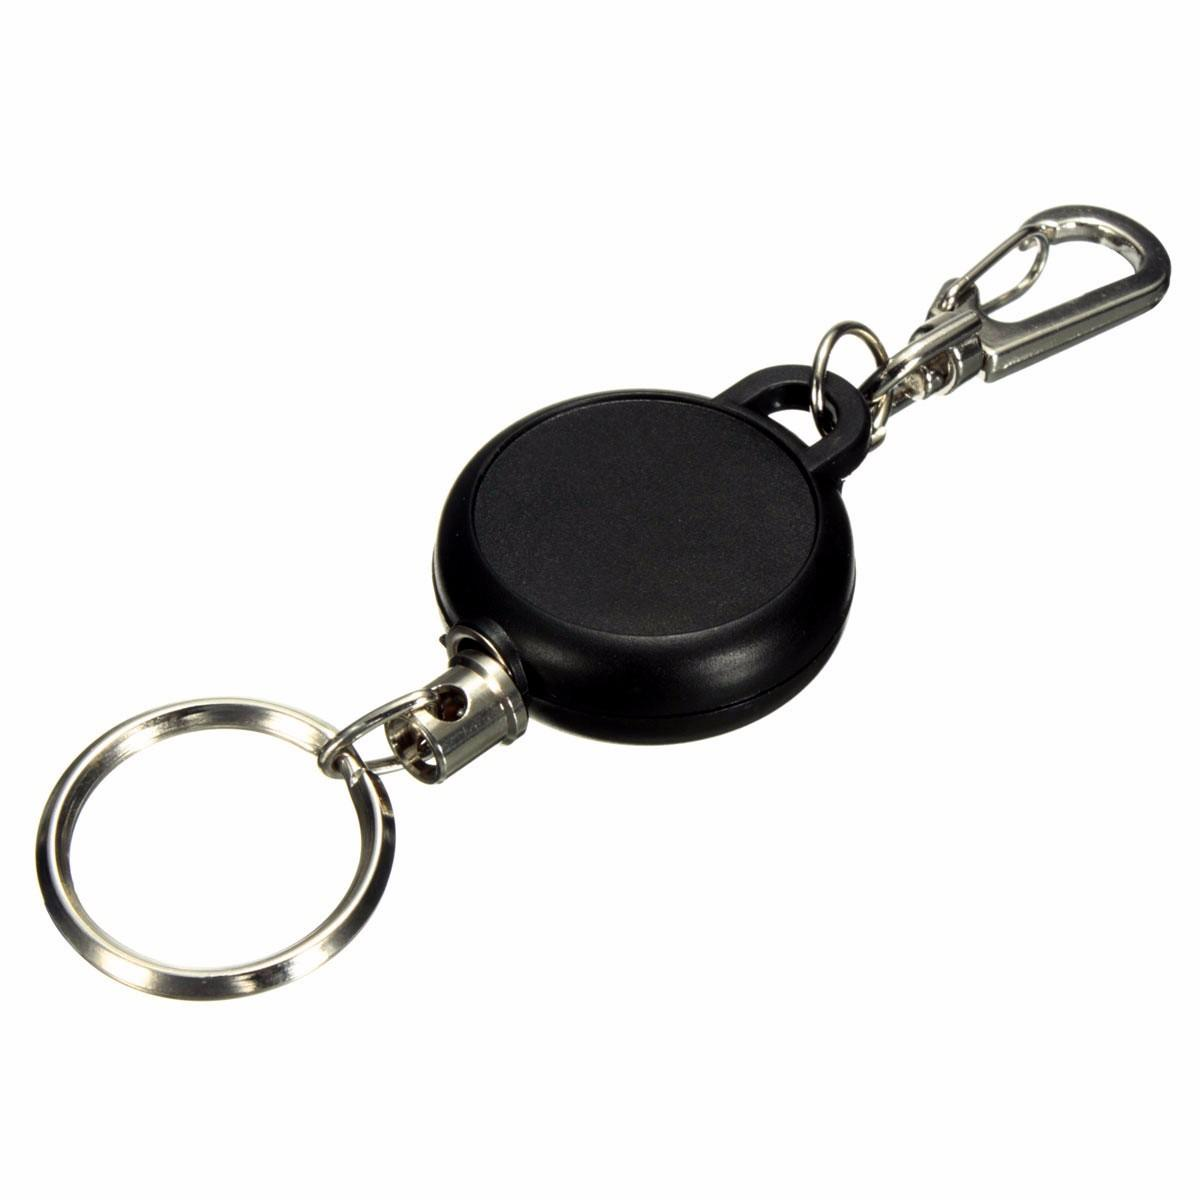 Key Chain Stainless Steel Cord Holder Keyring Reel Retractable Recoil Belt Clip Key Clip